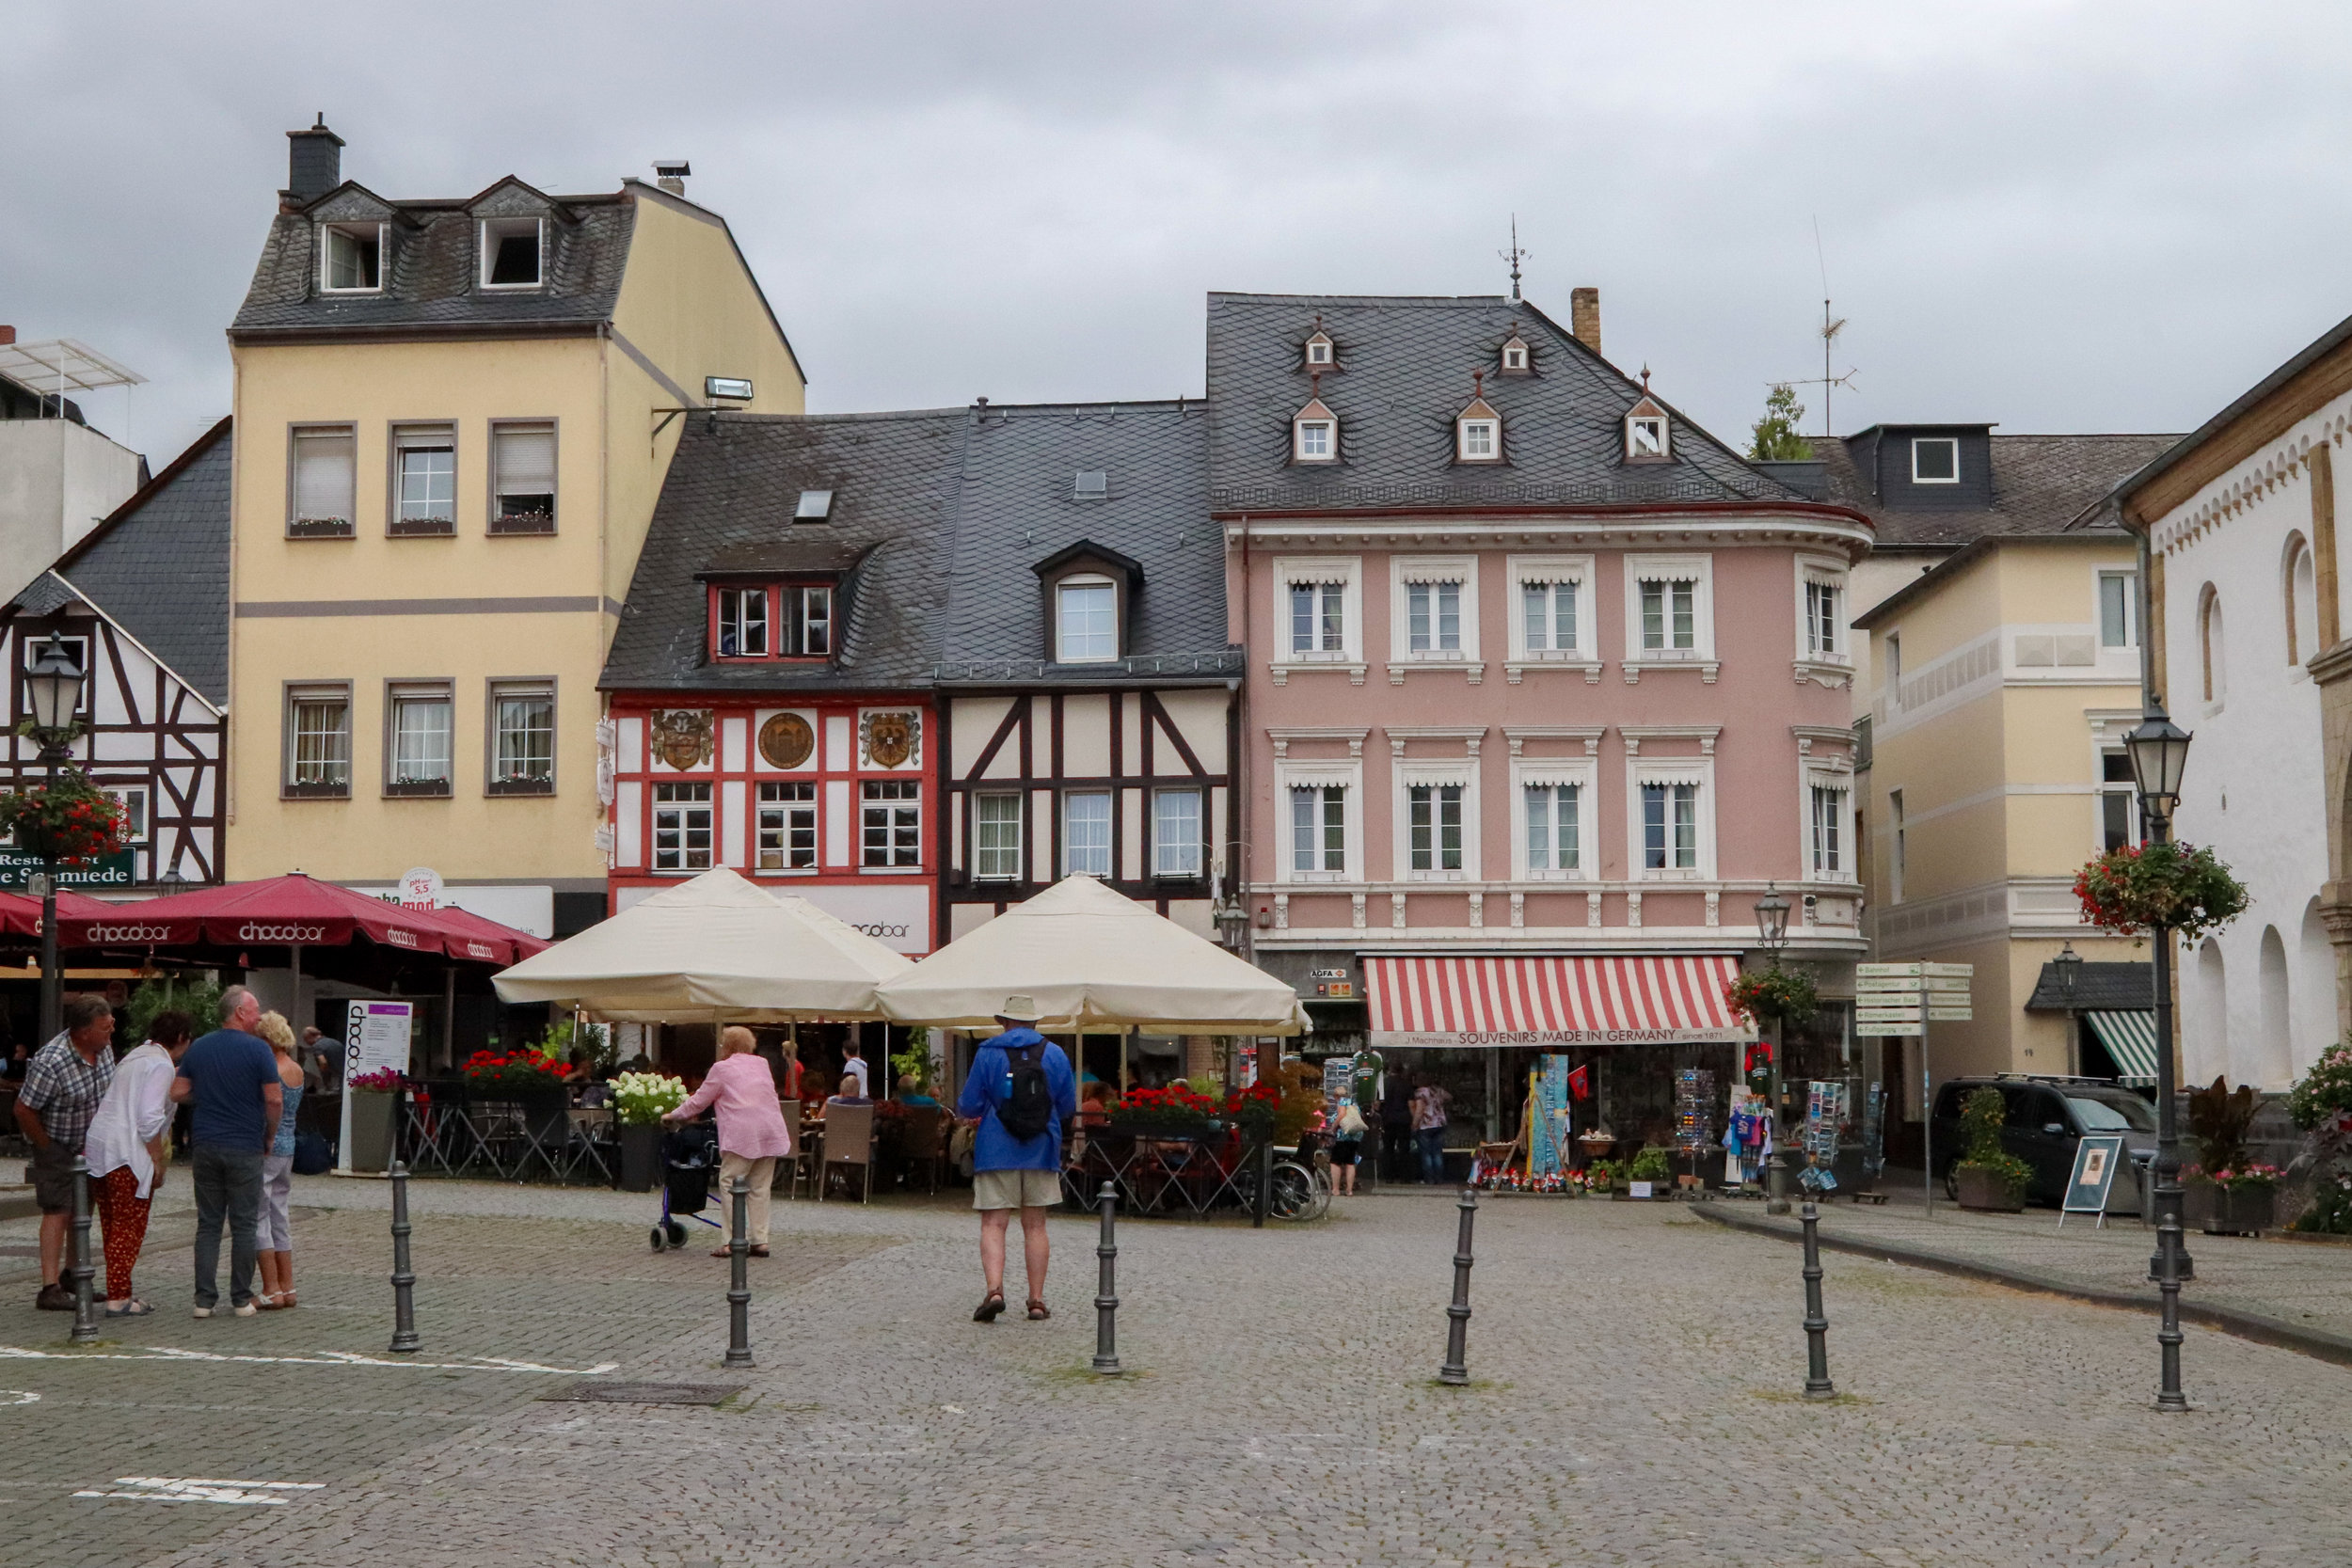 The charming square of Boppard, Germany